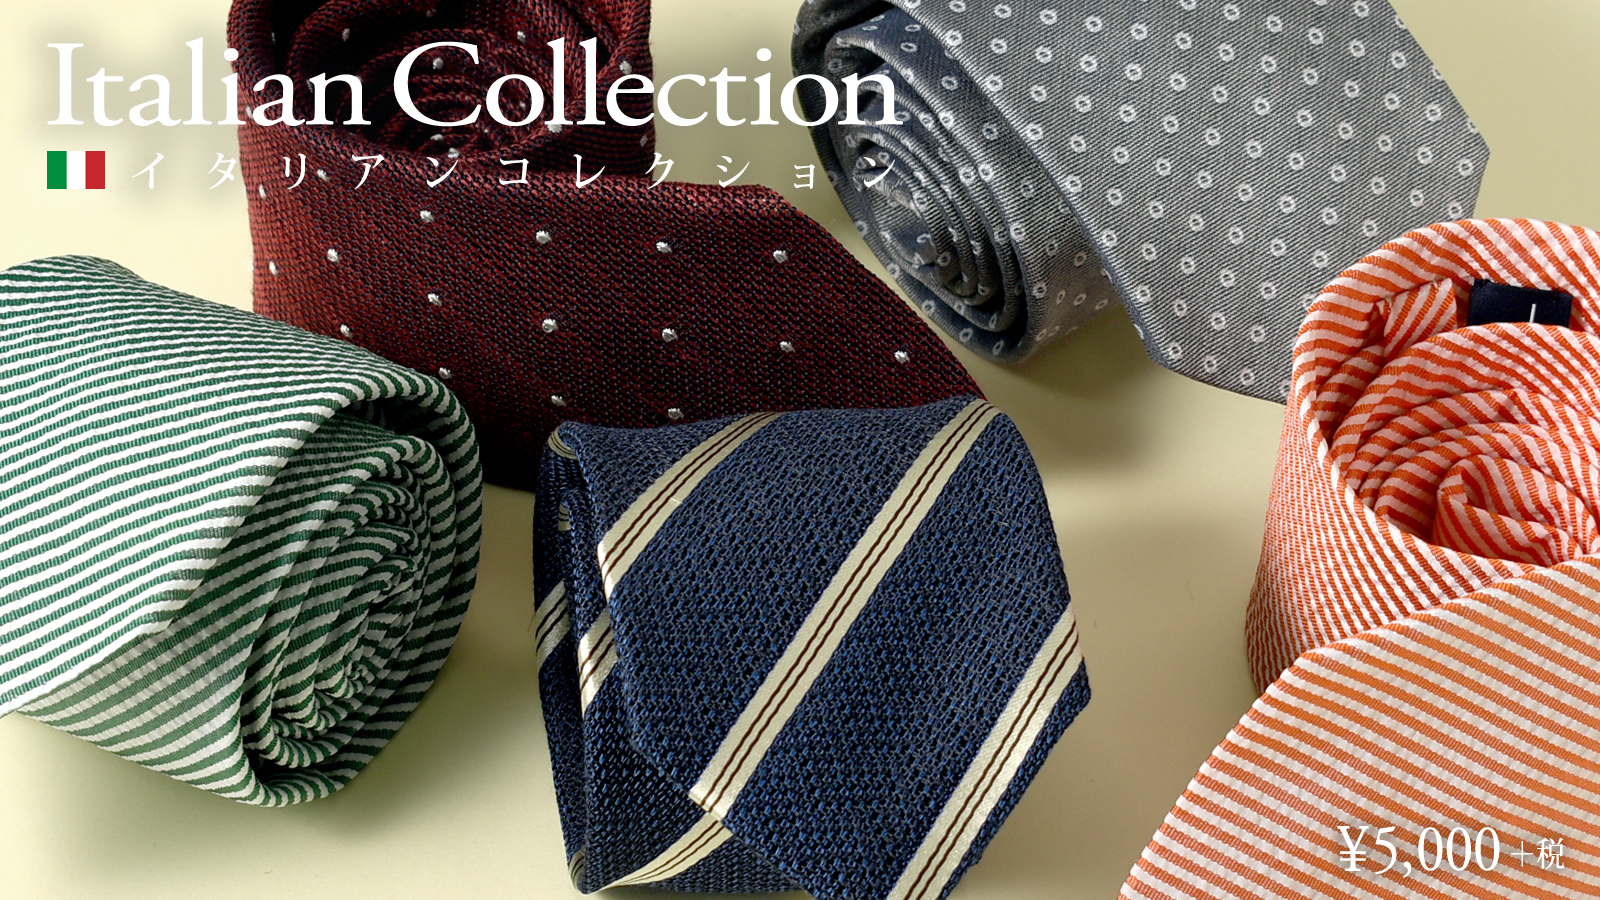 【ネクタイ】Italian Collection